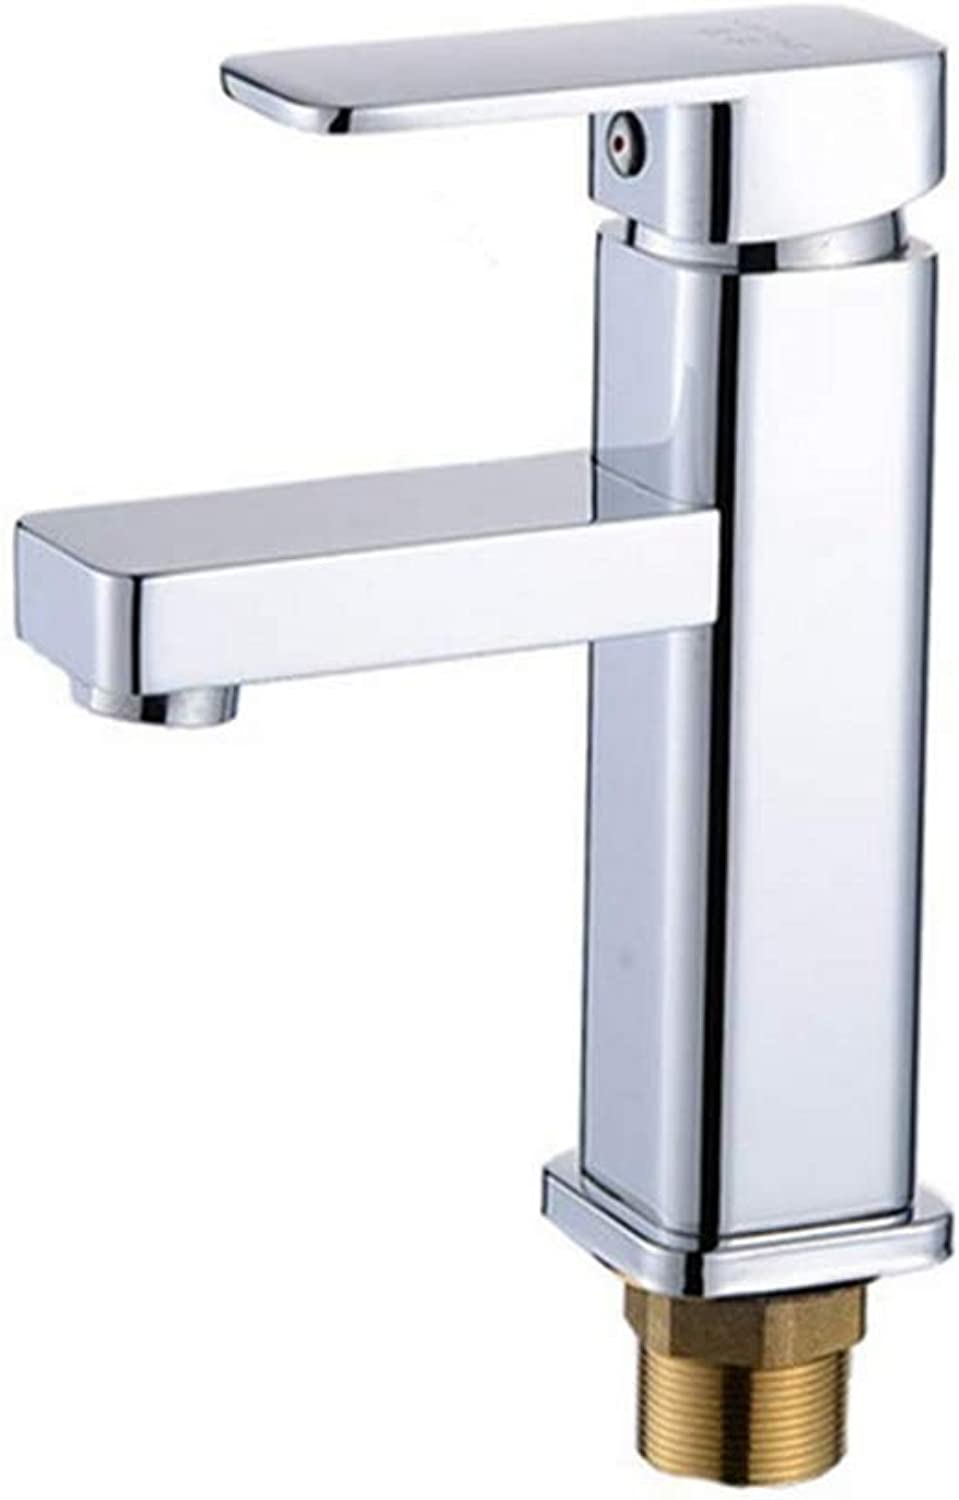 Brass Wall Faucet Chrome Brass Faucetfaucet Bathroom Wash Basin Faucet